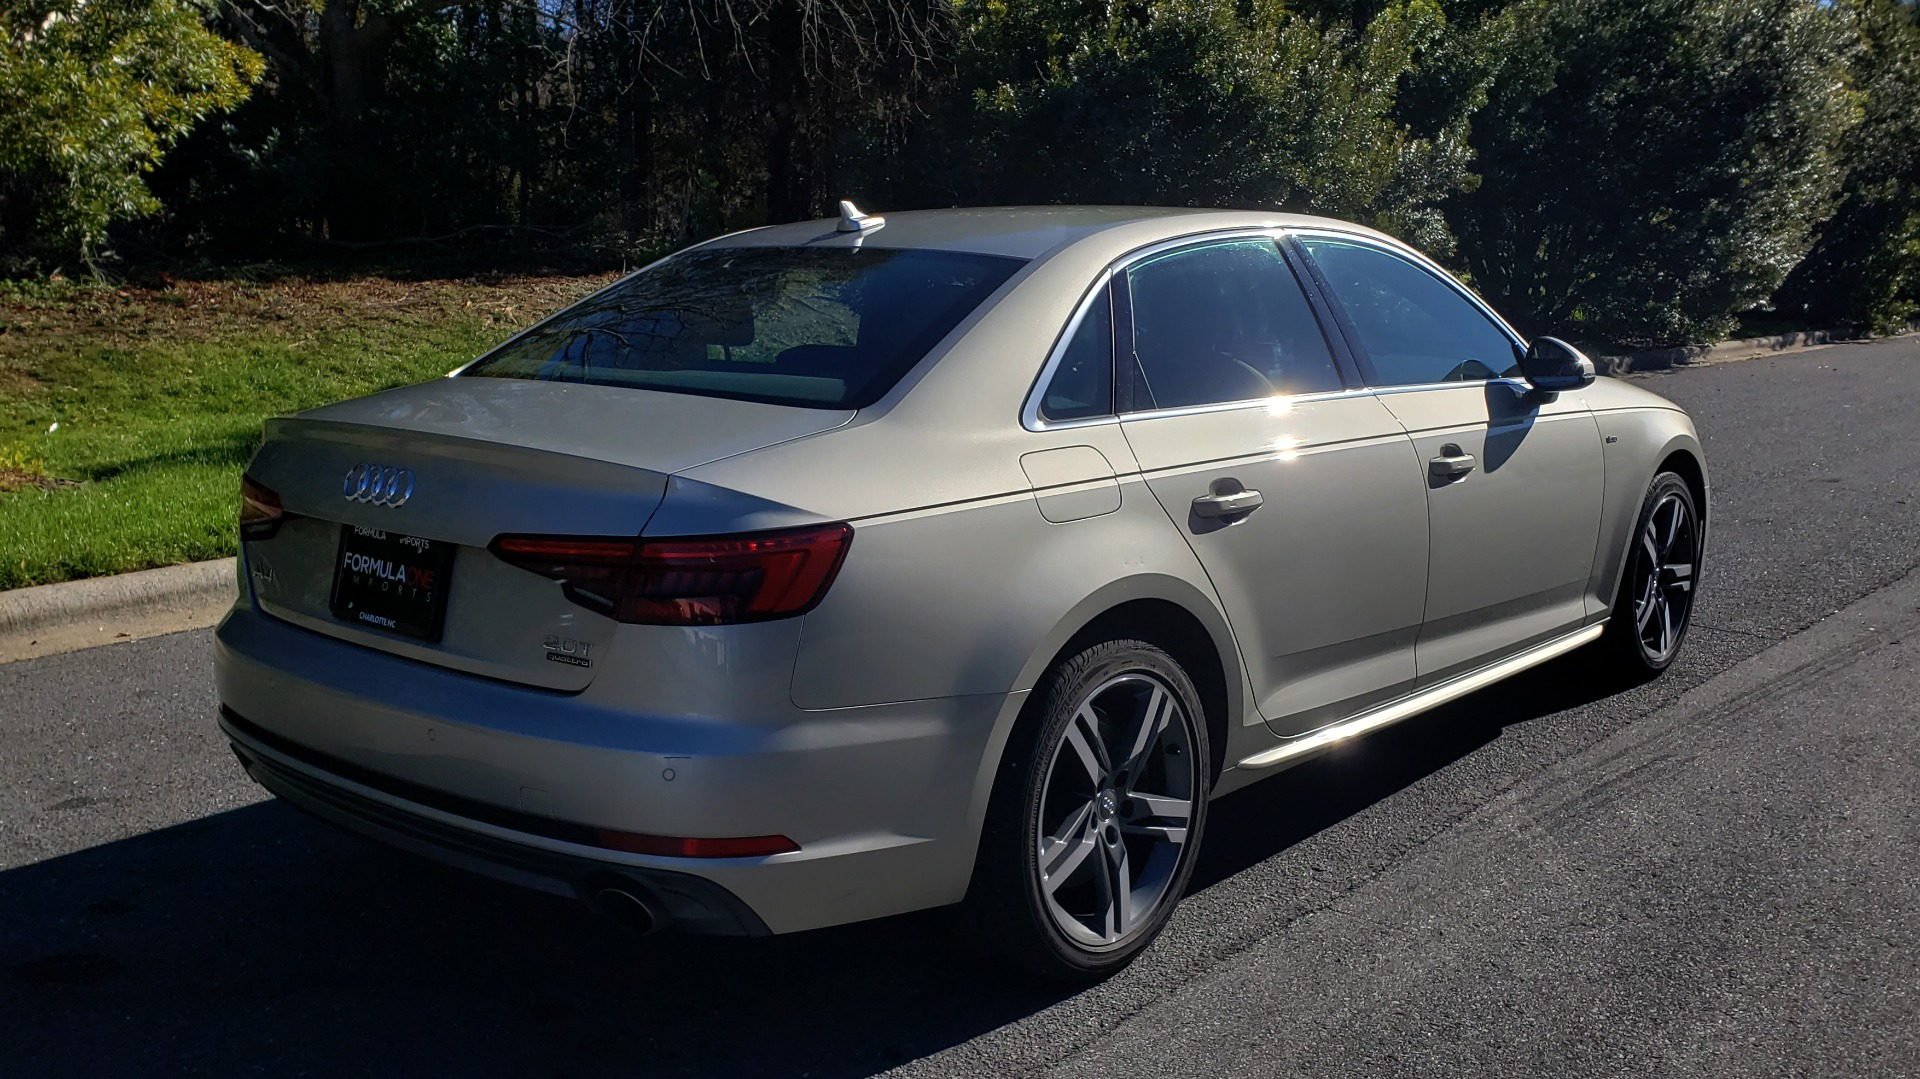 Used 2017 Audi A4 PREMIUM PLUS / TECH PKG / B&O SND / S-LINE / NAV / REARVIEW for sale Sold at Formula Imports in Charlotte NC 28227 5